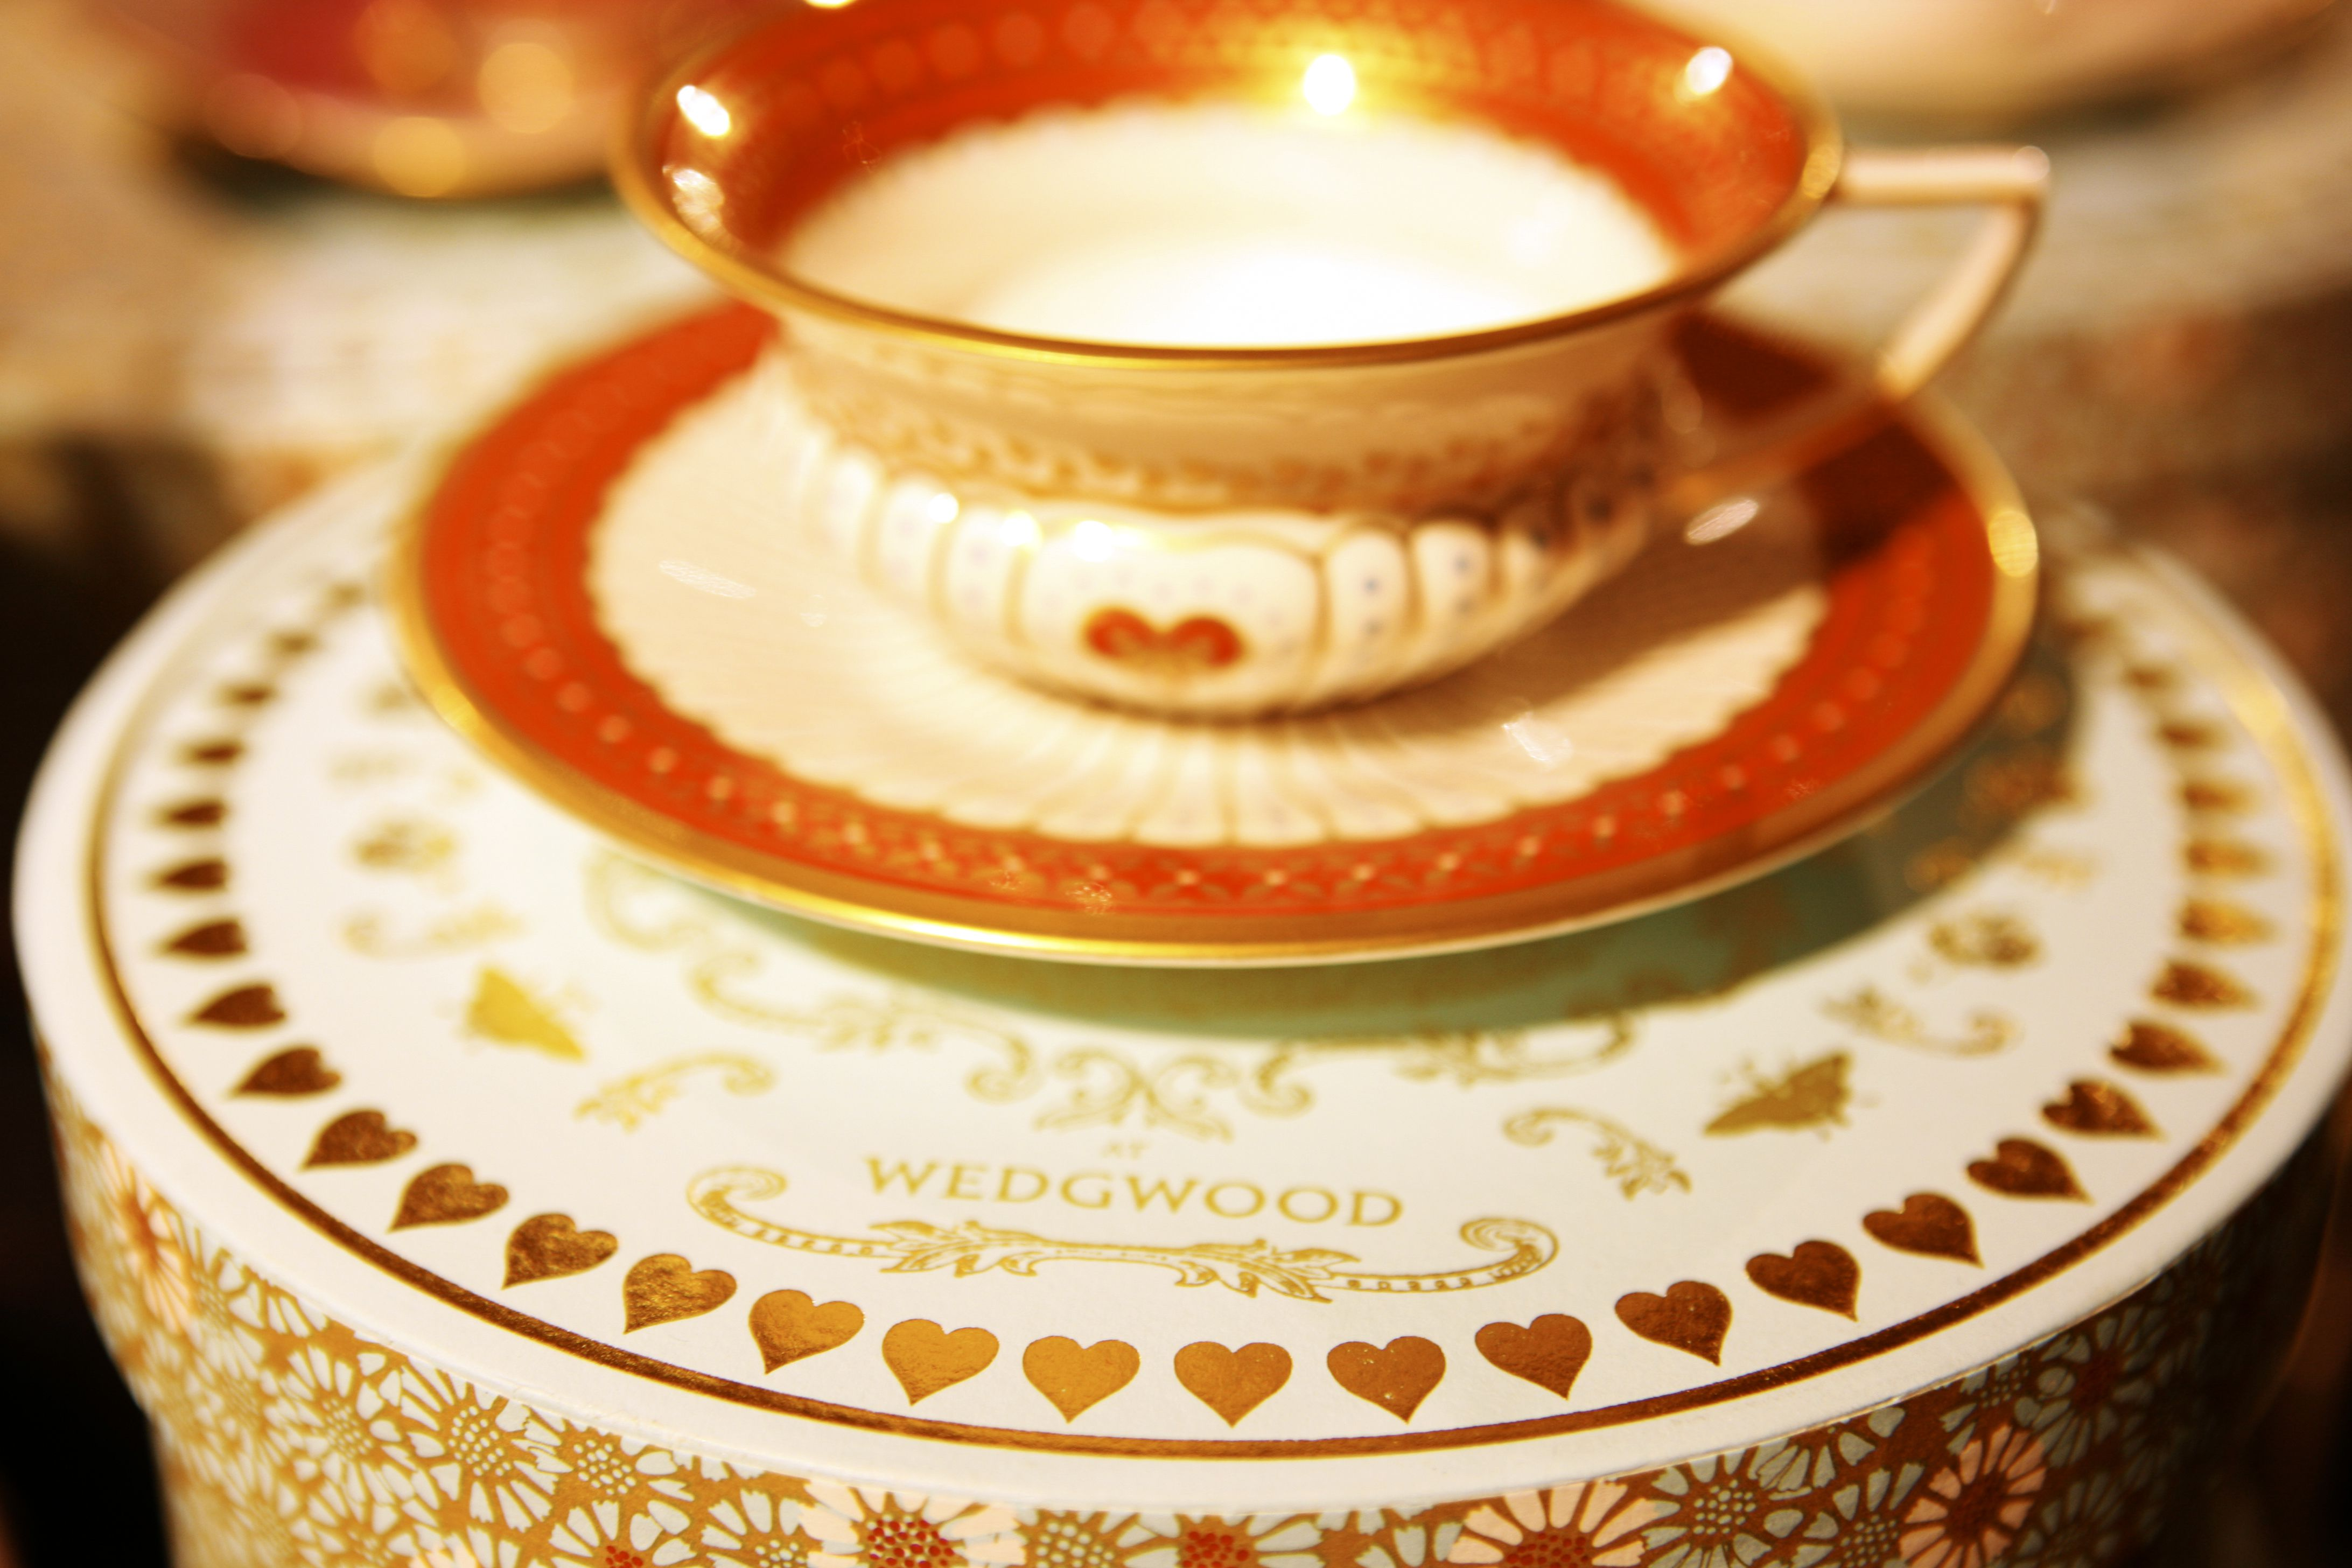 A close up detail of a display of Wedgwood china at the Harrods department store, London., Knightsbridge, London, London, England.